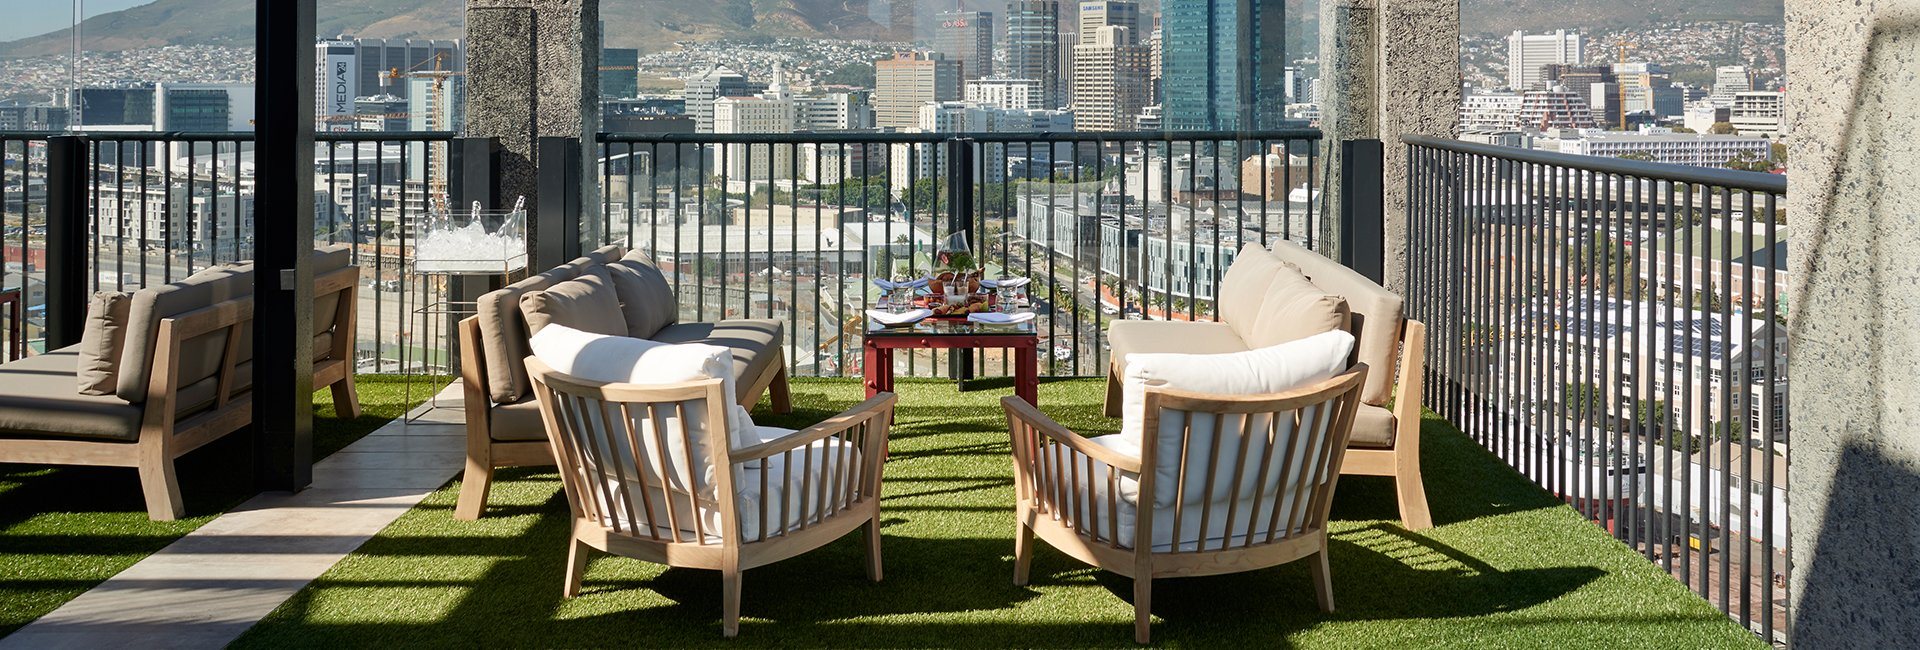 The Silo Cape Town Hotel View Dining Deck